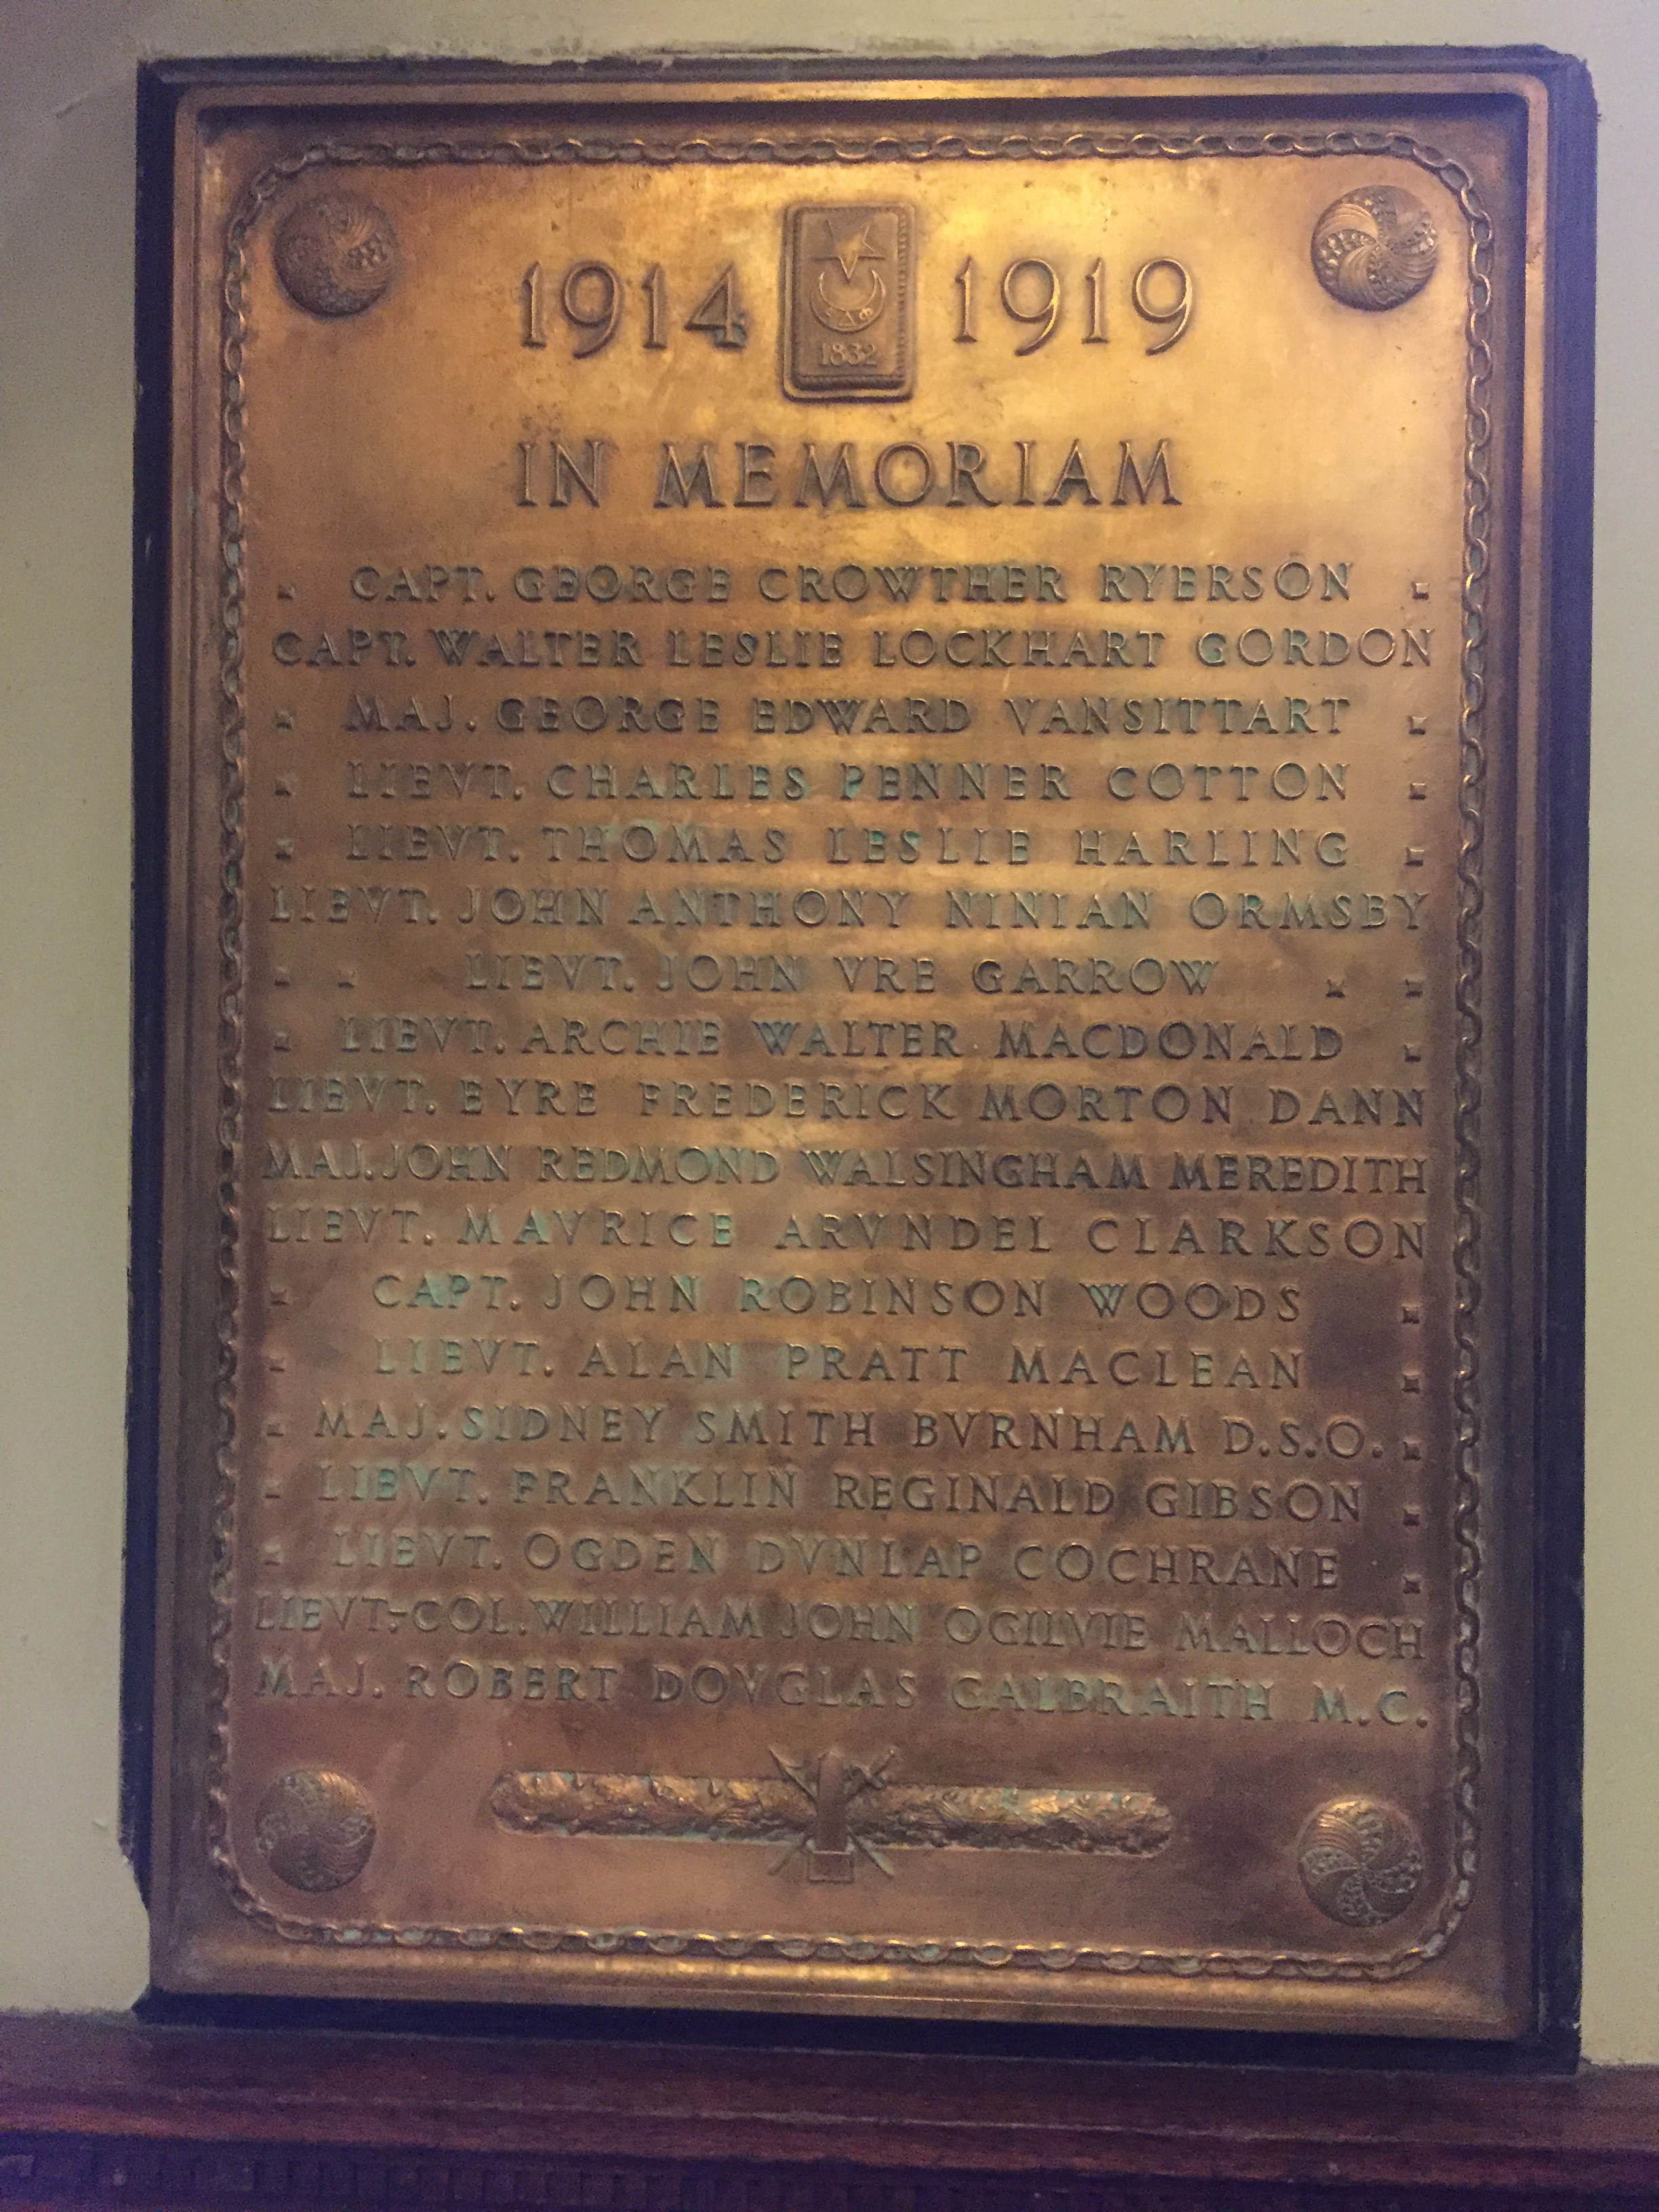 Memorial Plaque – Memorial Plaque – Lt. George Crowther Ryerson is remembered on this bronze memorial plaque. It is found in the foyer of the Alpha Delta Phi Chapter House at 94 Prince Arthur Avenue